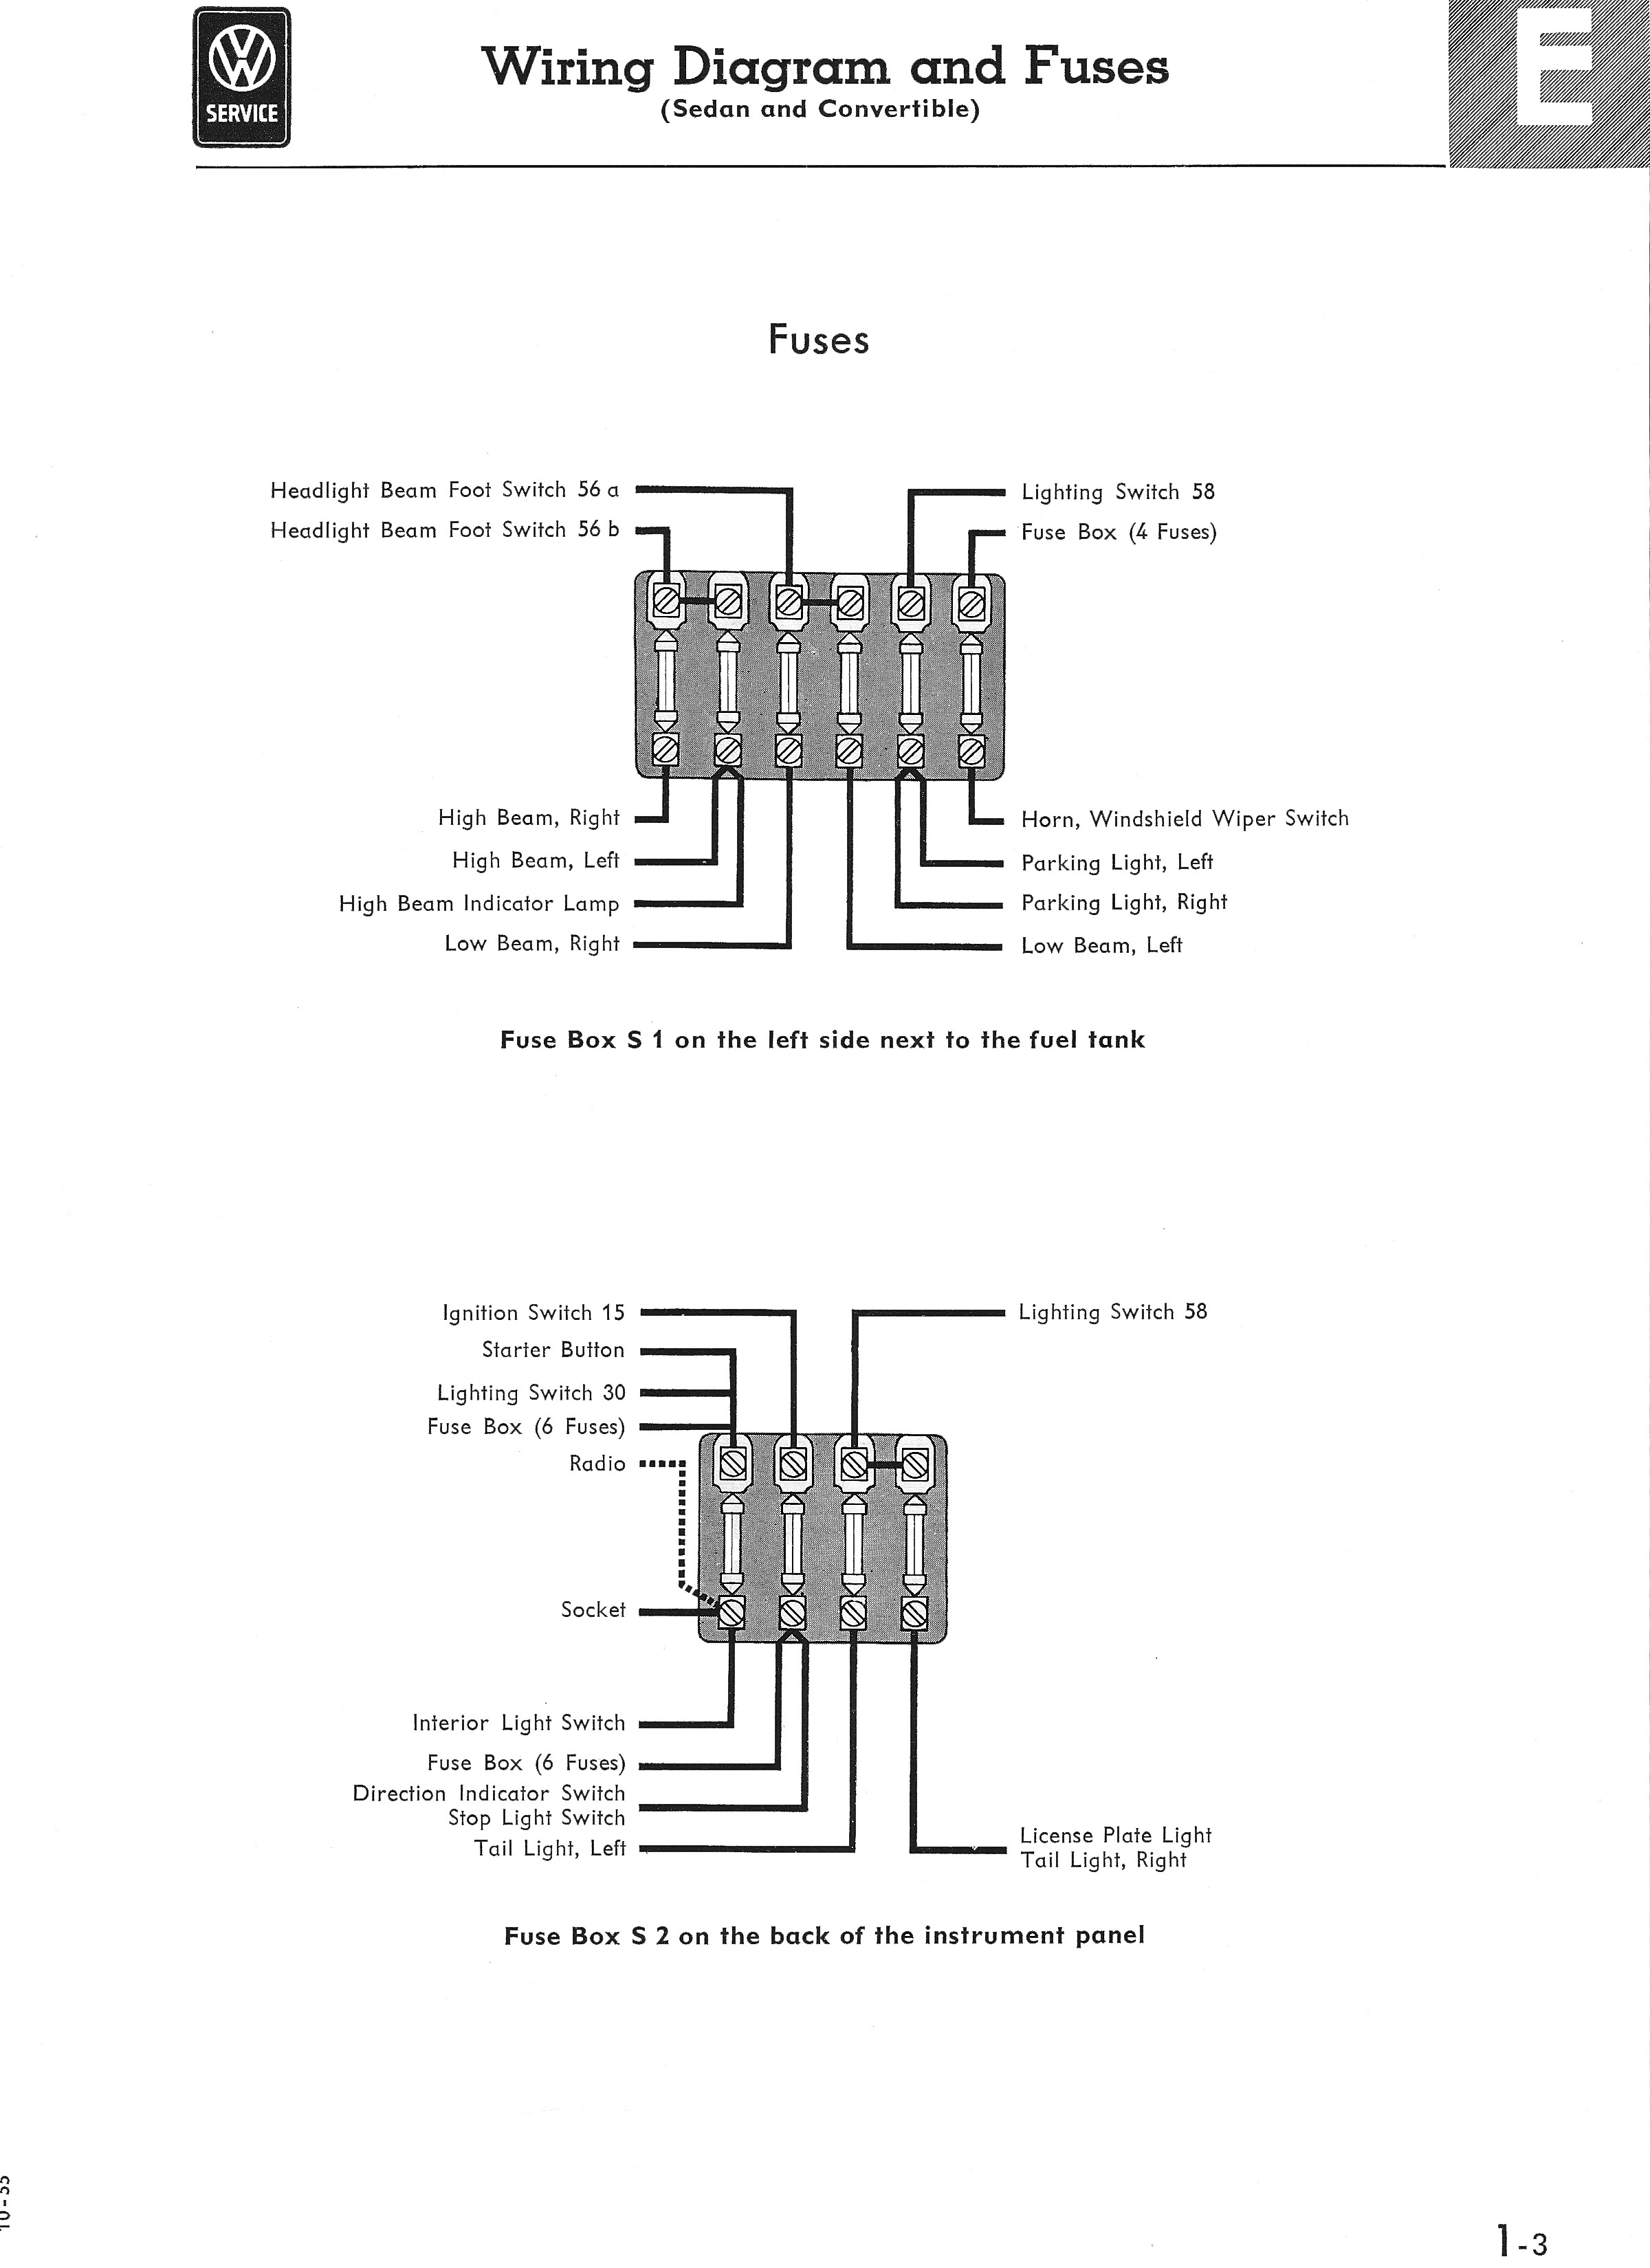 65 mustang fuse box diagram image 9